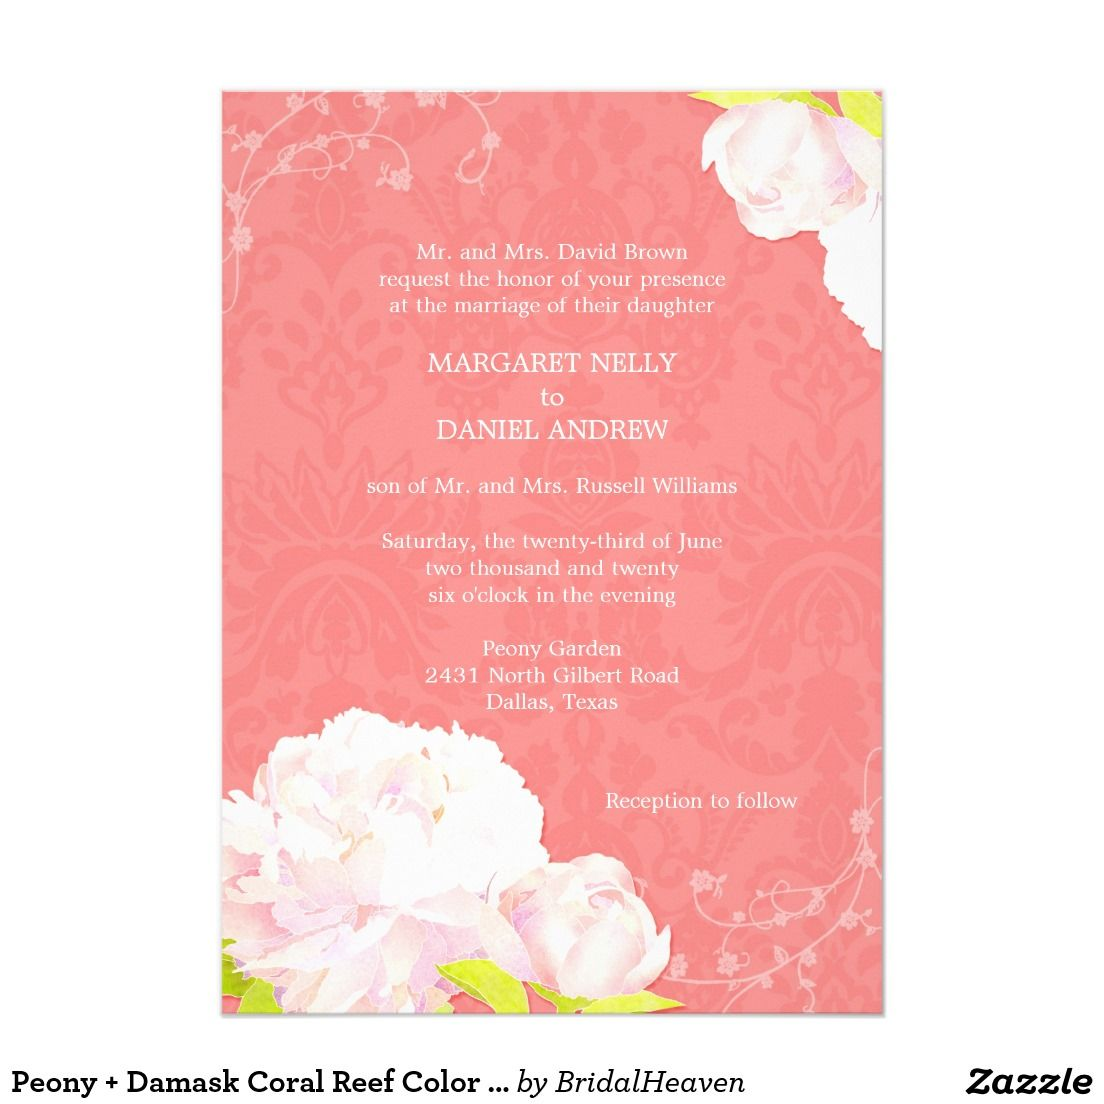 Coral Colored Wedding Invitations: Pink Peony Coral Reef Color Wedding Invitation